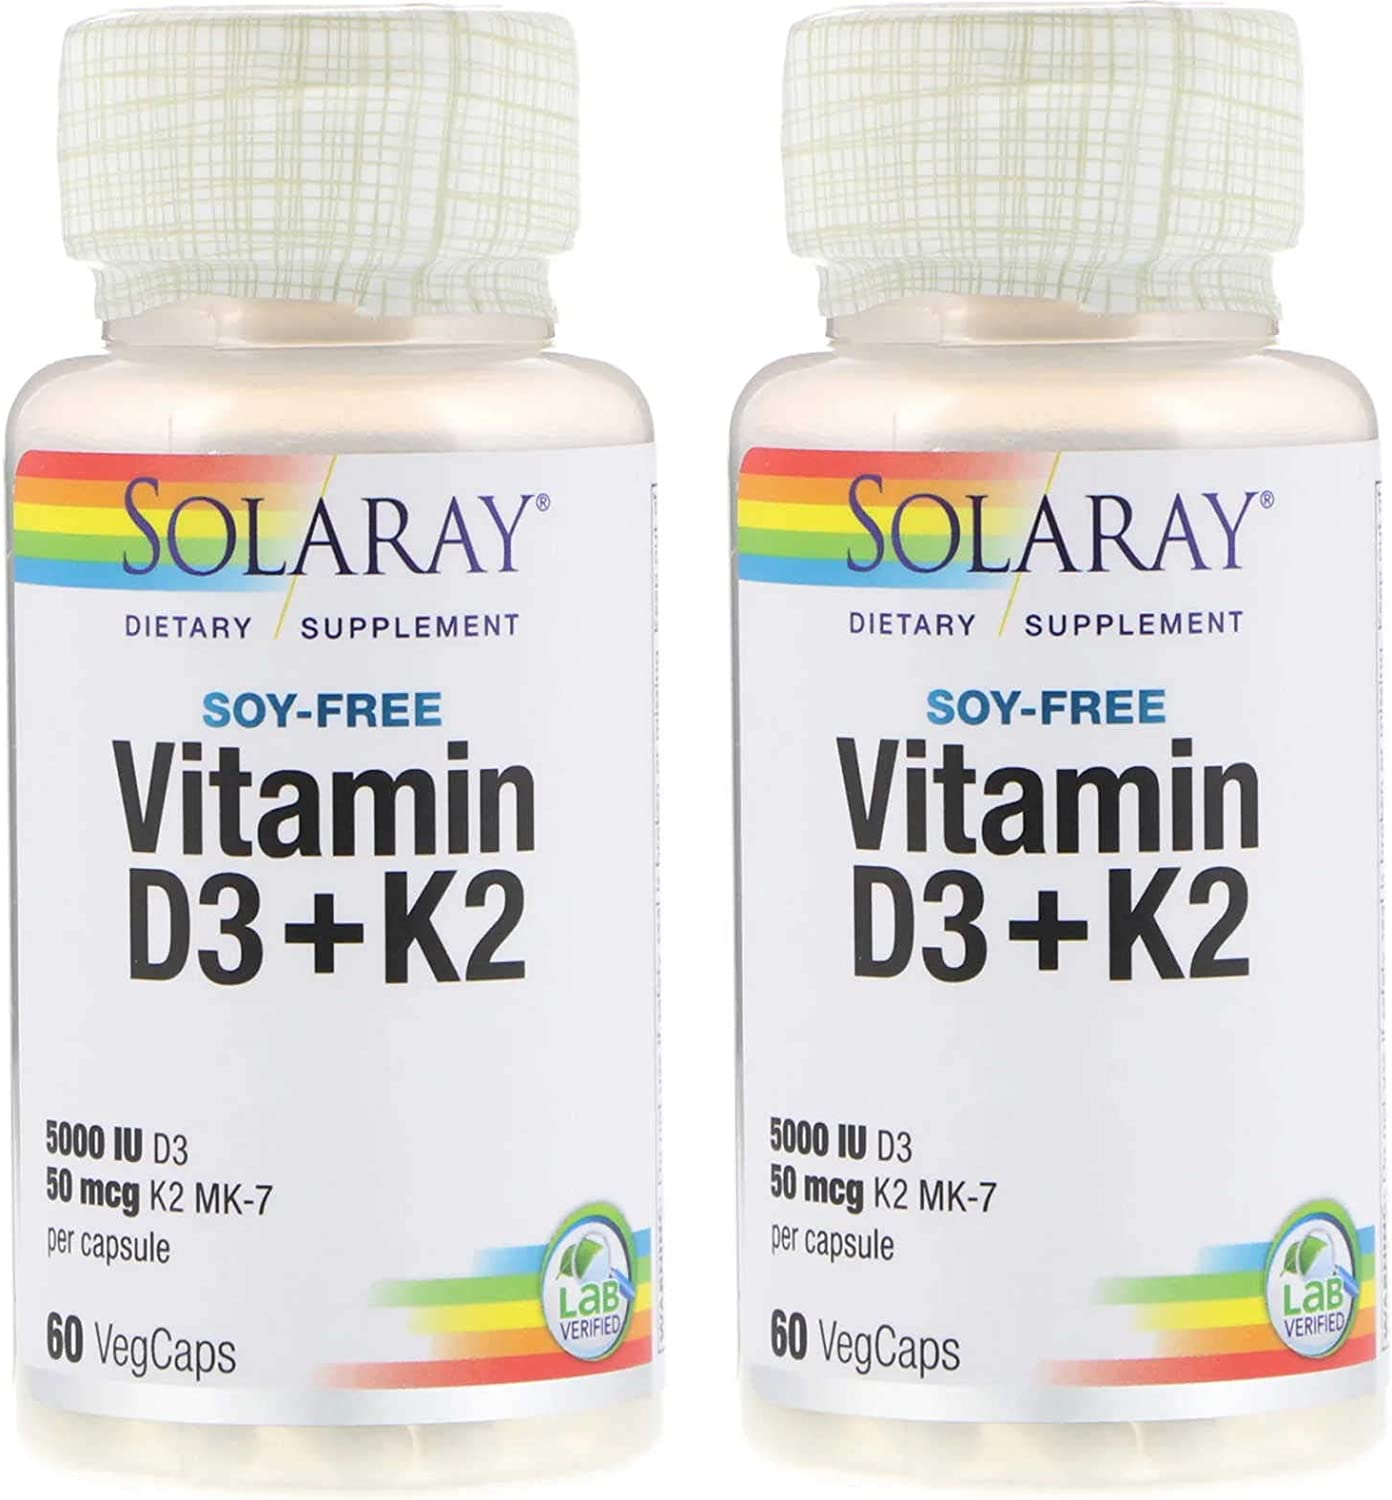 SolaRay Soy Free Vitamin D3 + K2 Lab Verified Dietary Supplement with 5000 IU D3 and 50 Micrograms K2 MK-7 Per Capsule (60 VegCaps) Pack of 2